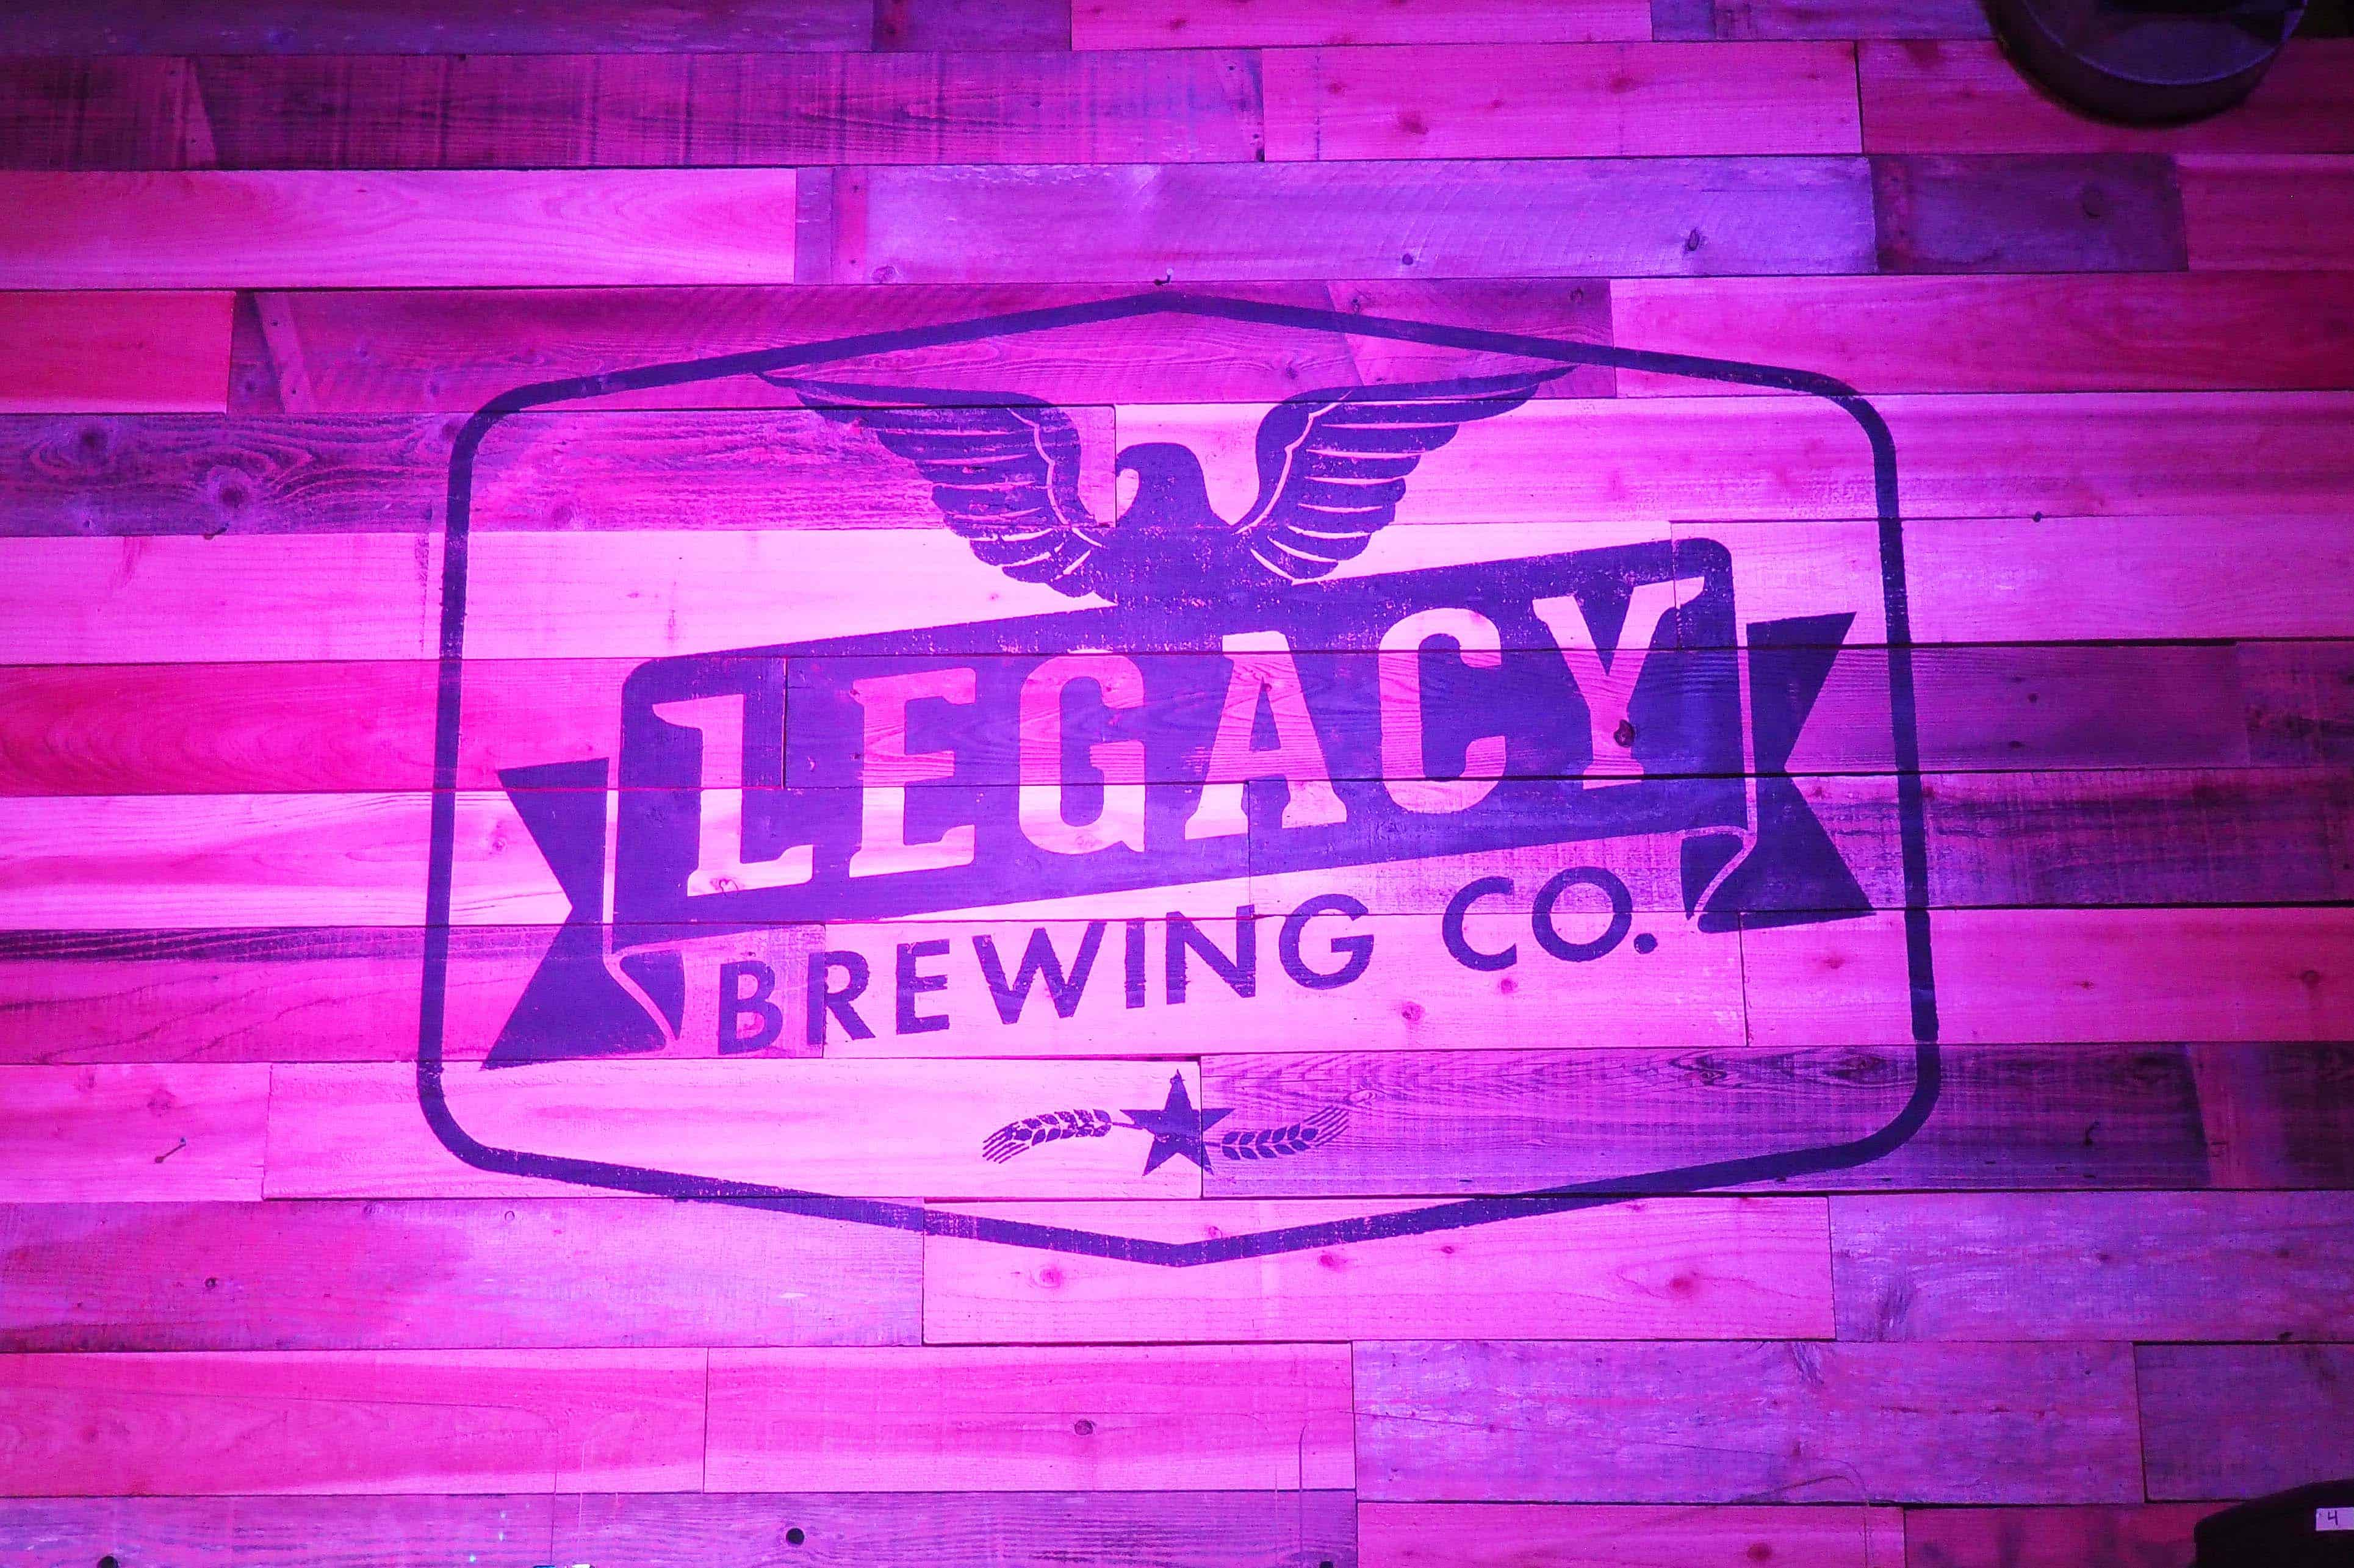 Legacy Brewing Company Illuminated Wall